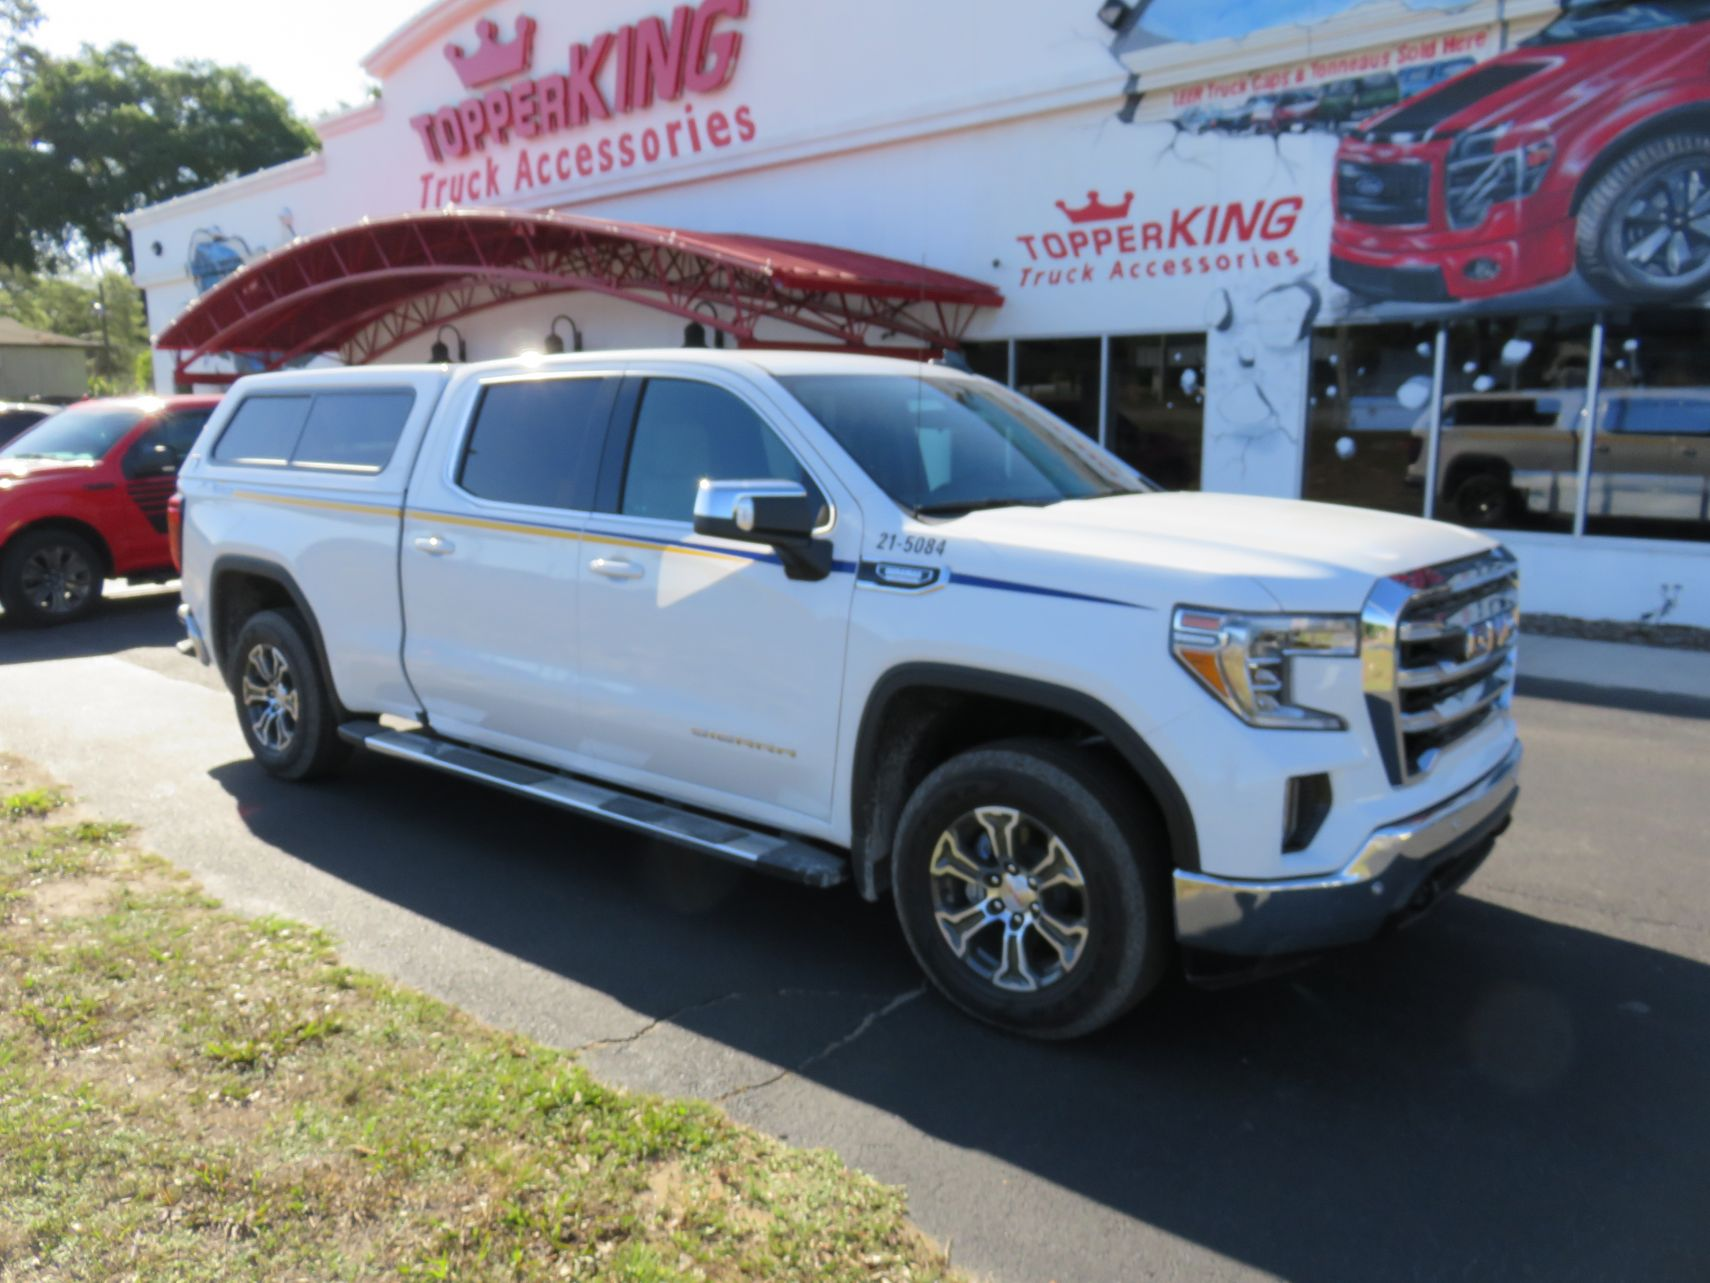 2020 GMC Sierra with TK Defender, Hitch, Running Boards, Chrome by TopperKING Brandon 813-689-2449 or Clearwater FL 727-530-9066. Call today!